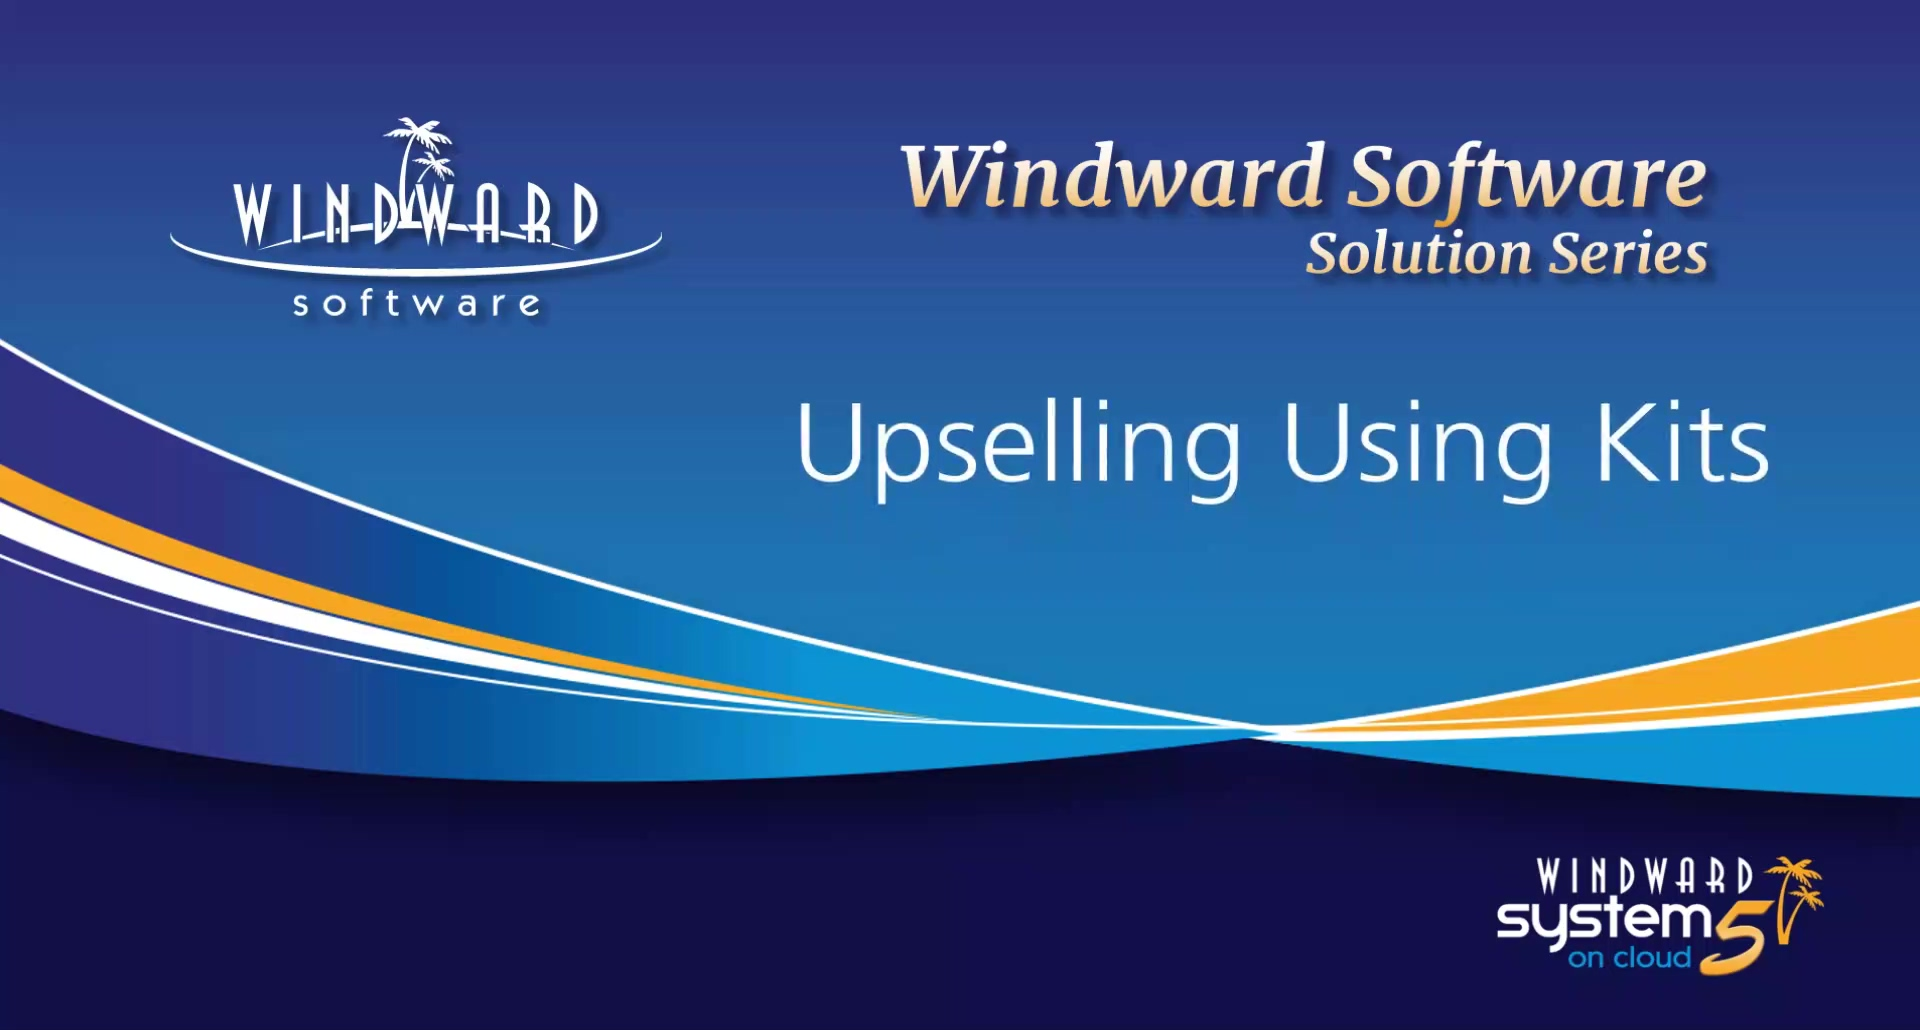 upsell-using-kits-windward-solution-series